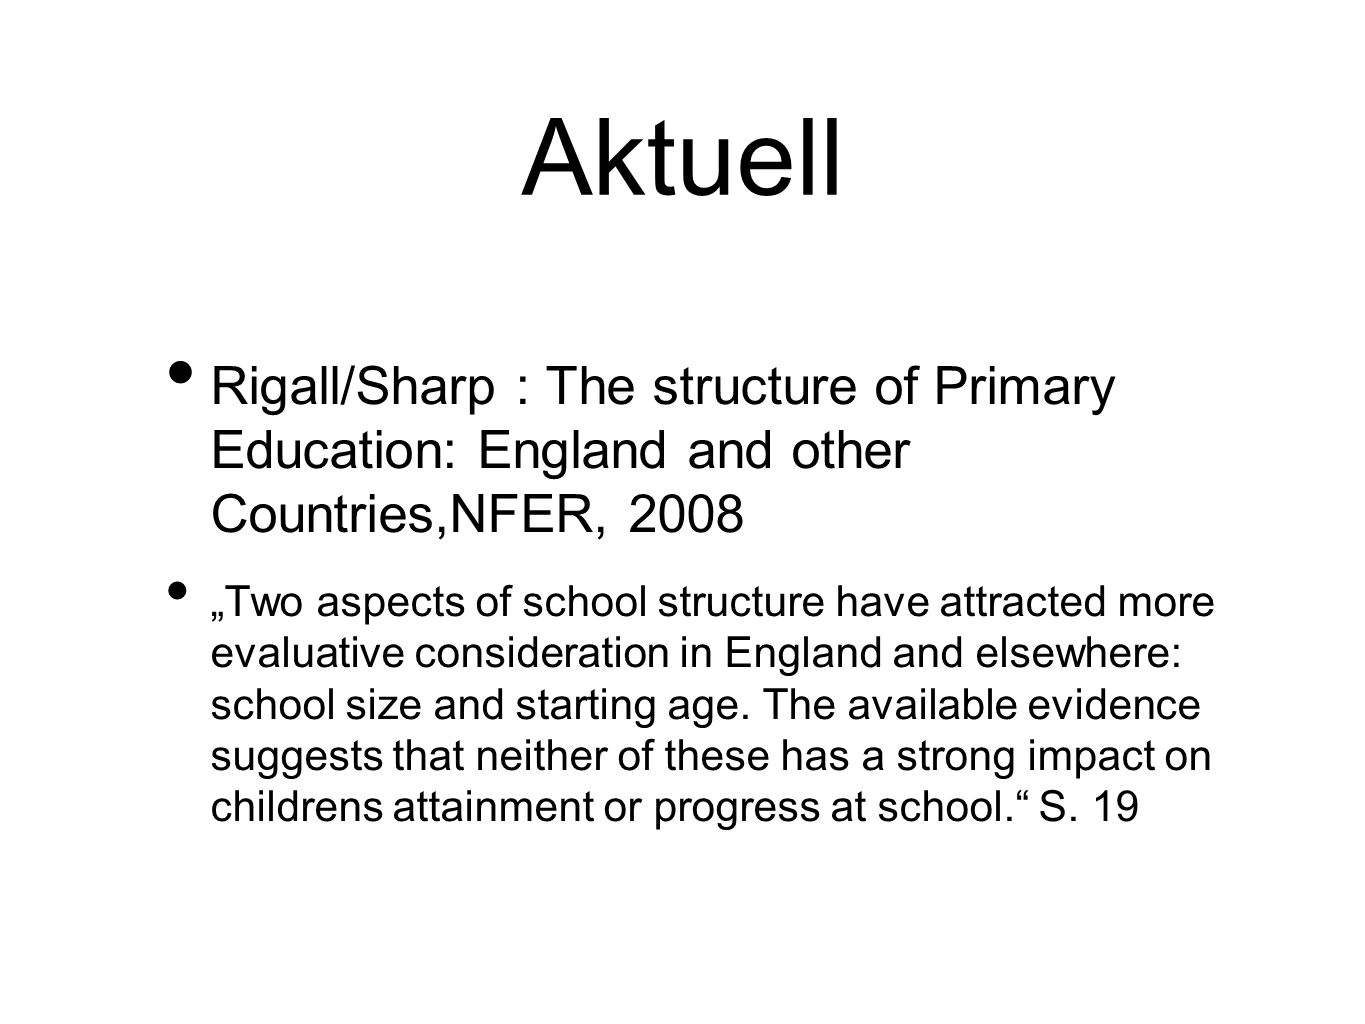 Aktuell Rigall/Sharp : The structure of Primary Education: England and other Countries,NFER, 2008.